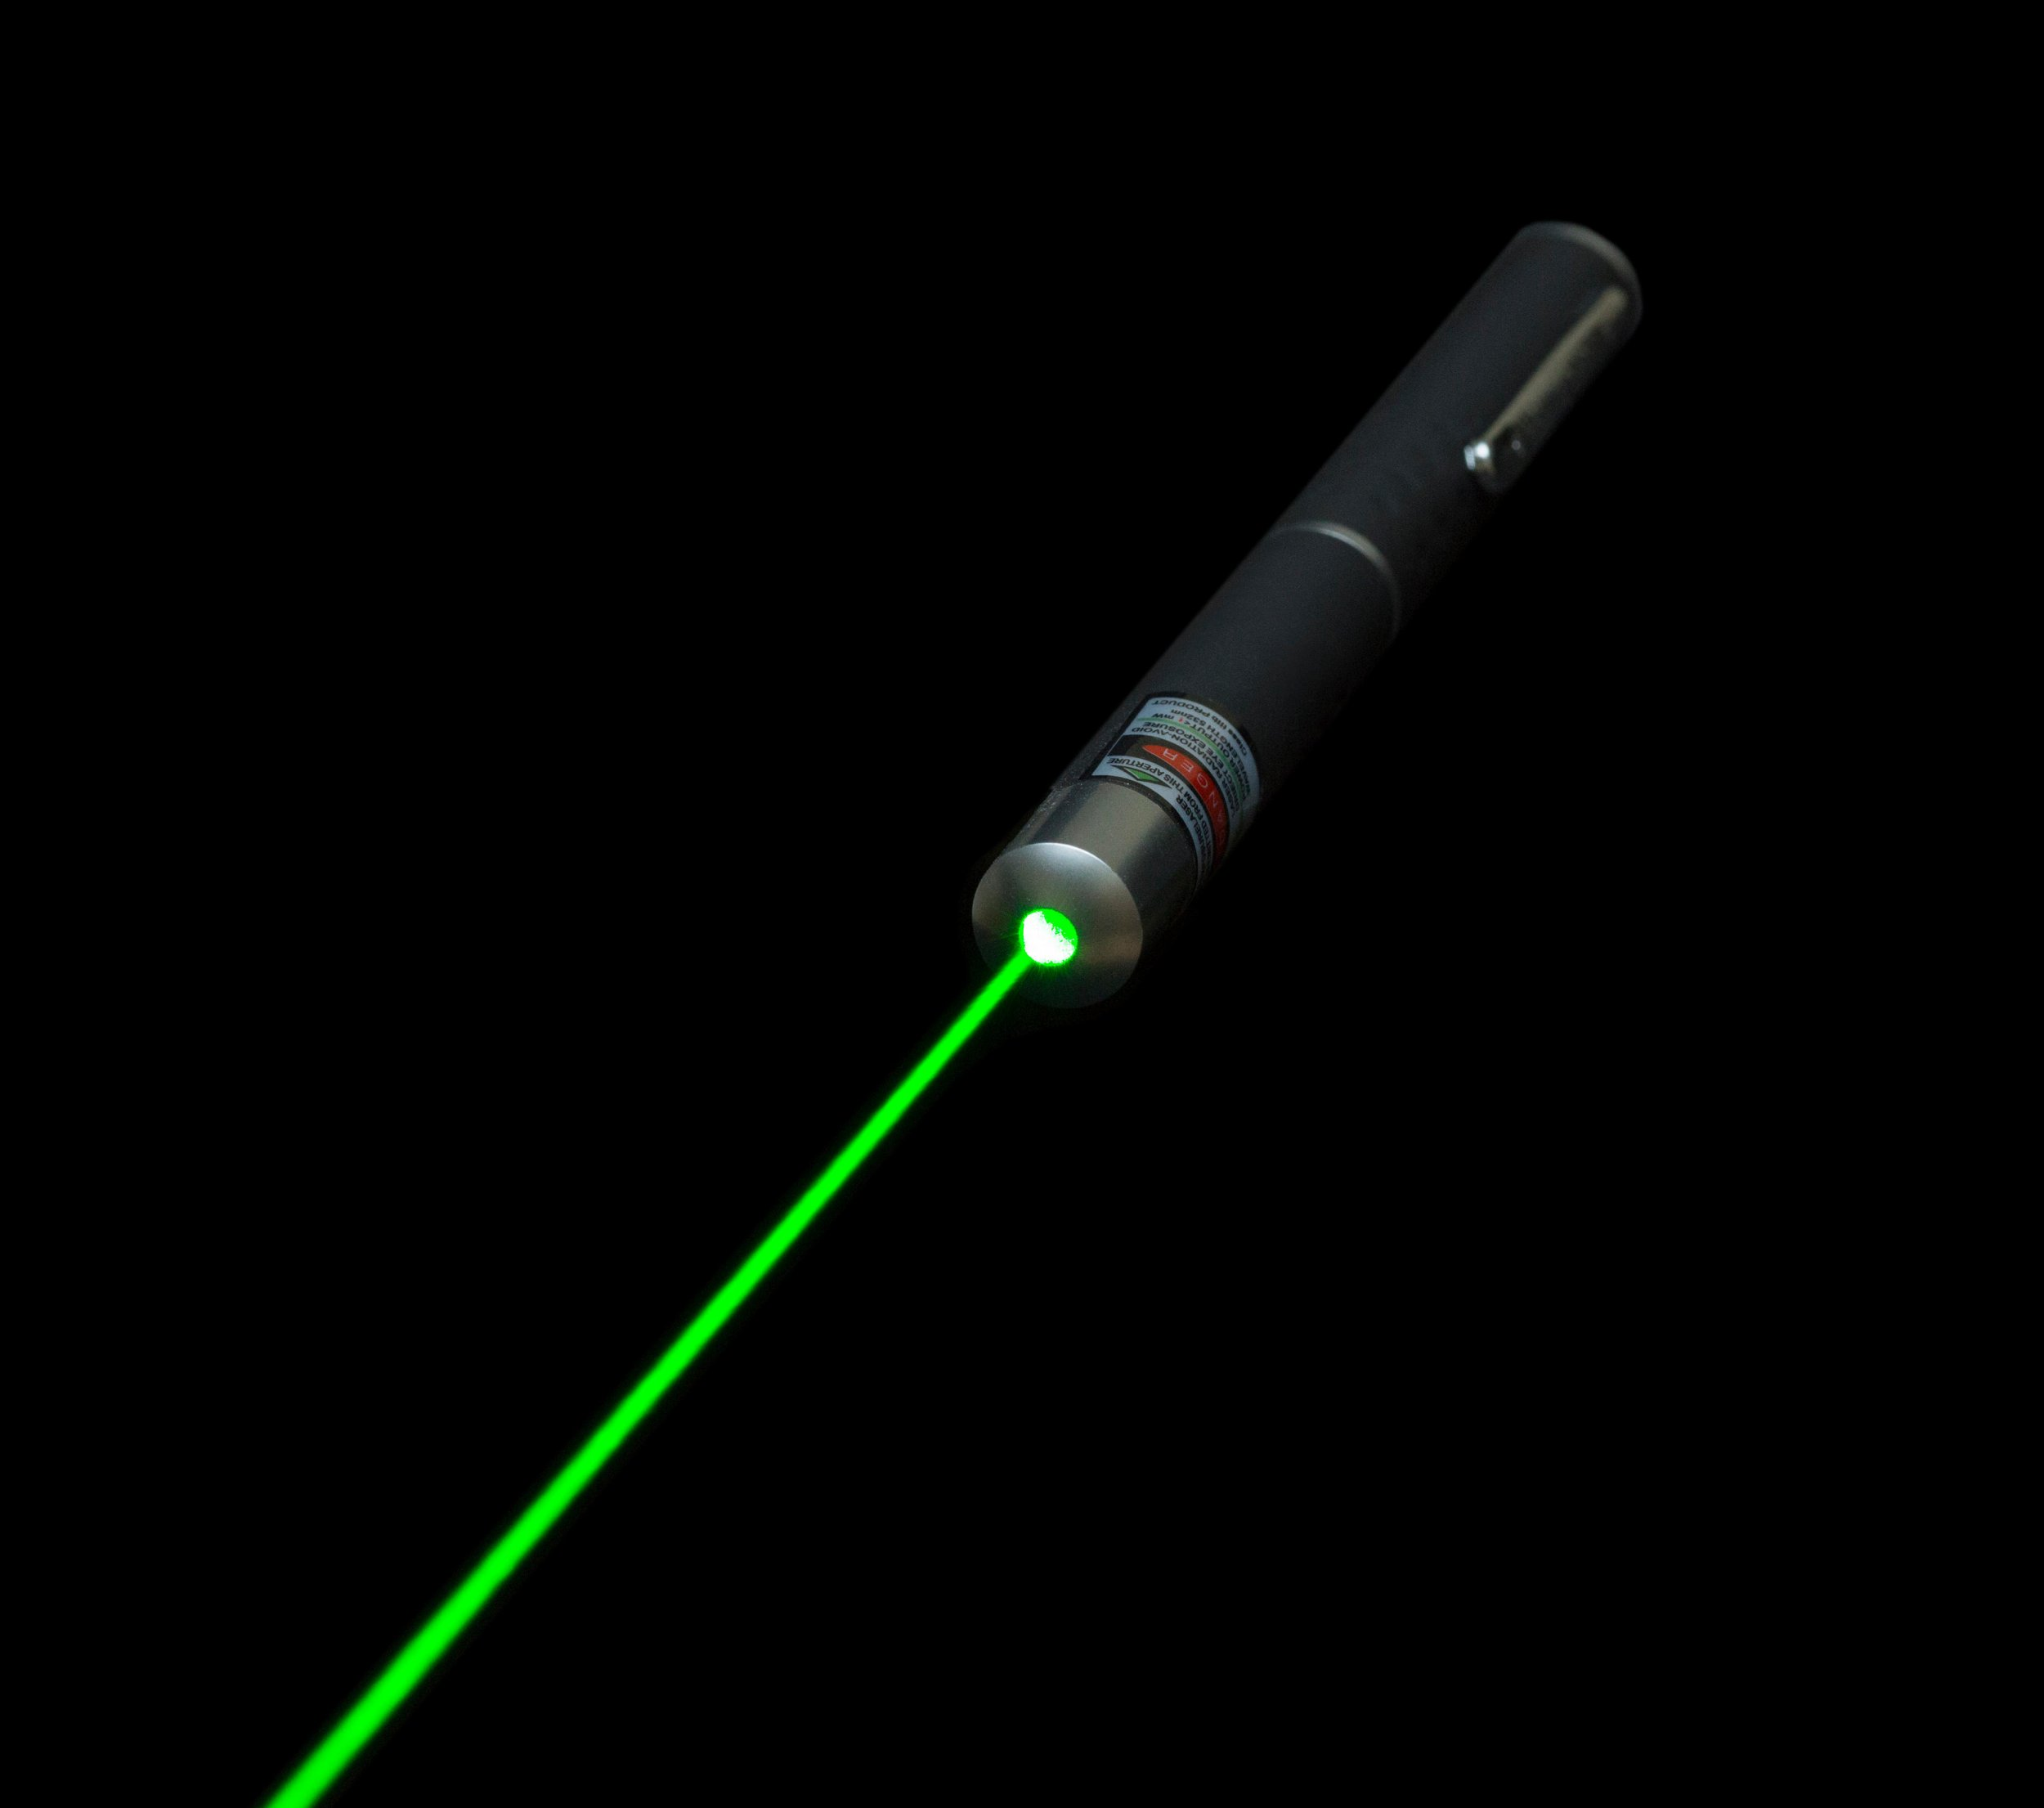 FH66JP green laser pen. Image shot 2014. Exact date unknown.